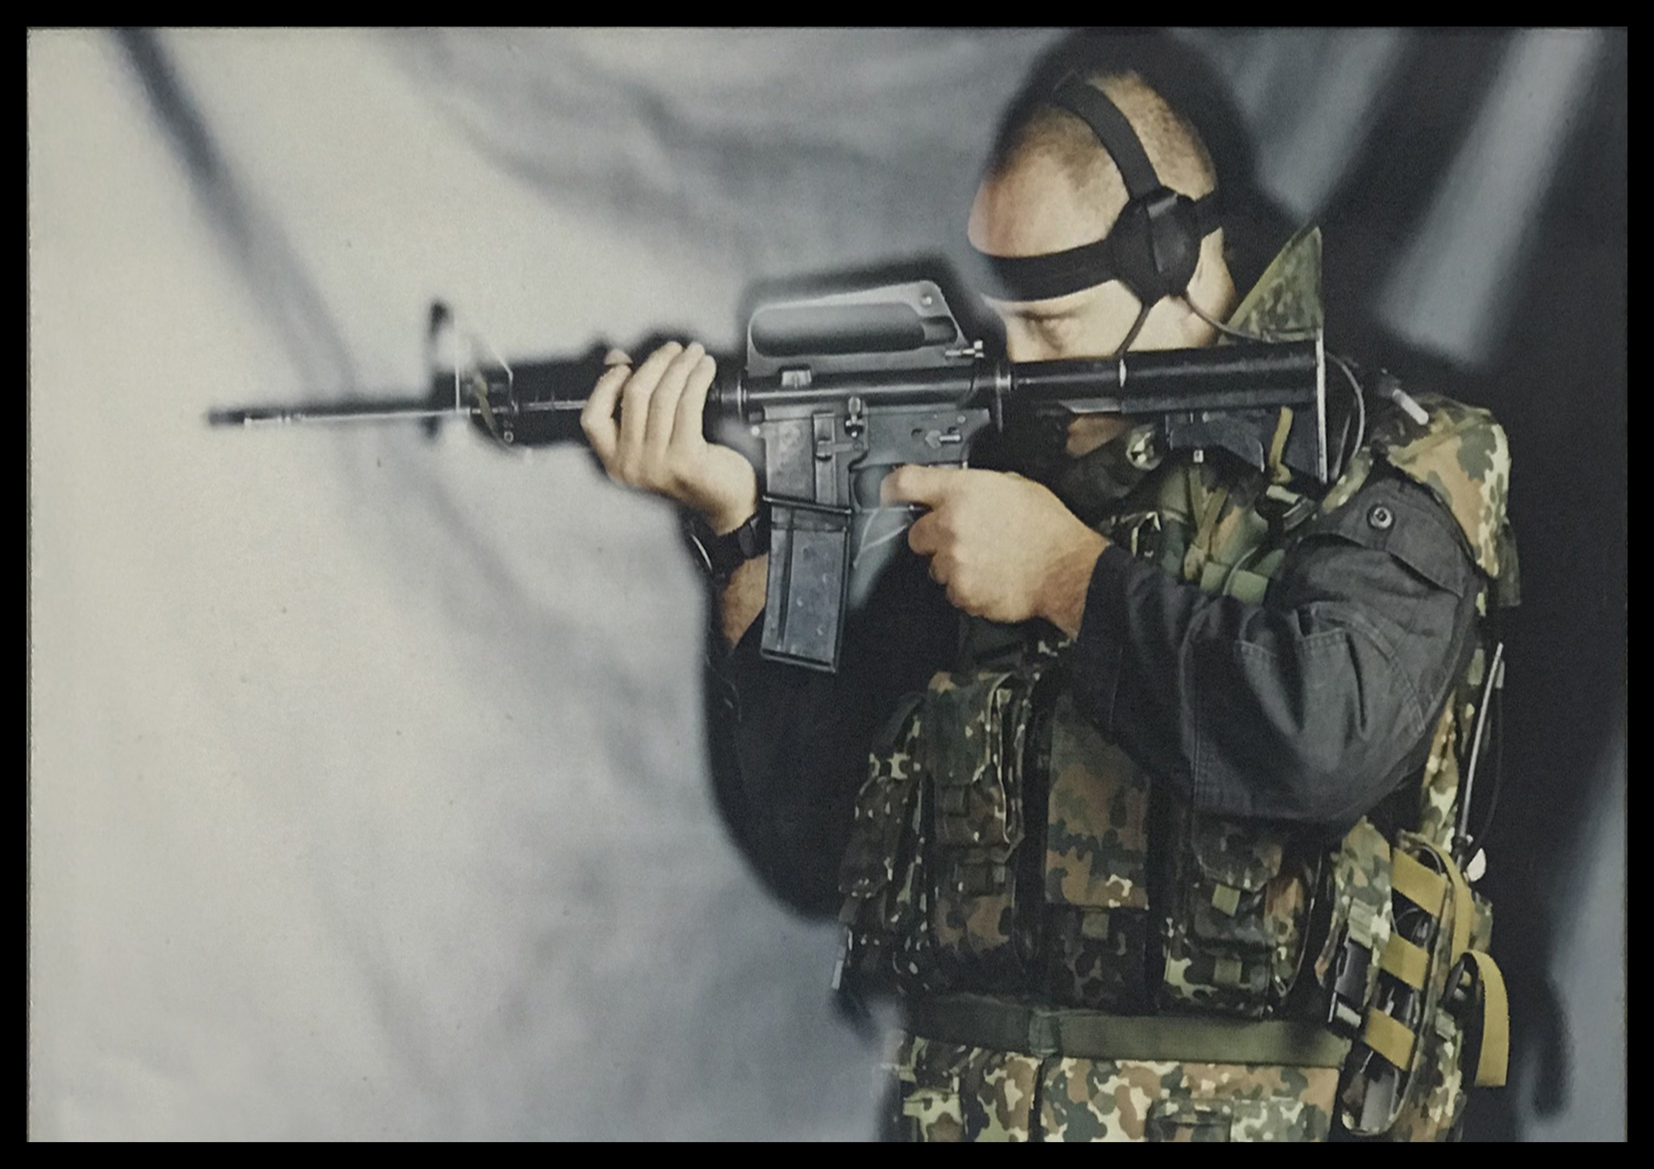 Itay Gil - Sniper Counter terror pose